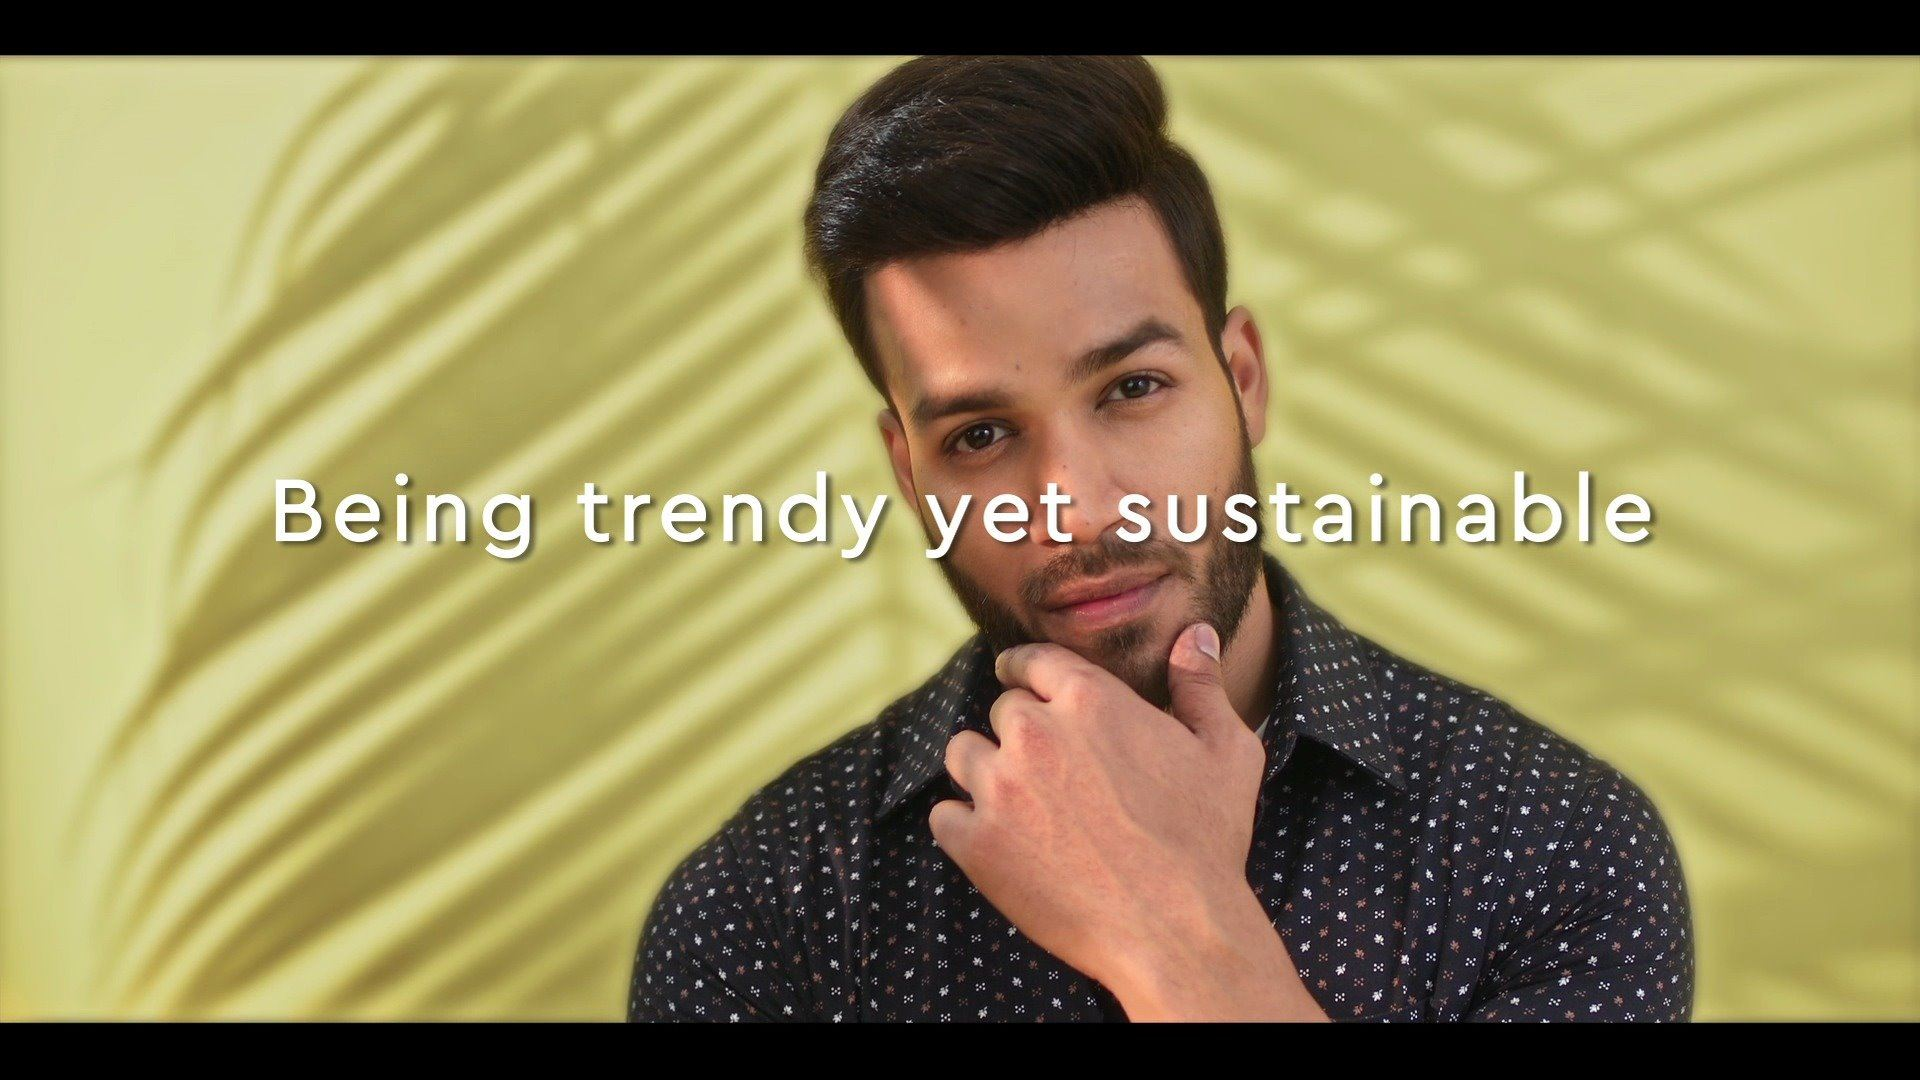 Fashionable, sustainable, comfortable is the epitome of what Arvind brings to you in this new collection of clothing made of TENCEL™ fibers clothing. Naturally soft, a beautiful drape, and breathable. A fabric that is softer and ensures a higher color depth than most other fabrics! Stop thinking and start exploring the new sustainable option in the world of men's fashion with Arvind. So look good, feel good, and stay trendy with the #FeelGoodFashion because sustainability never goes out of style!   Follow us to know more!